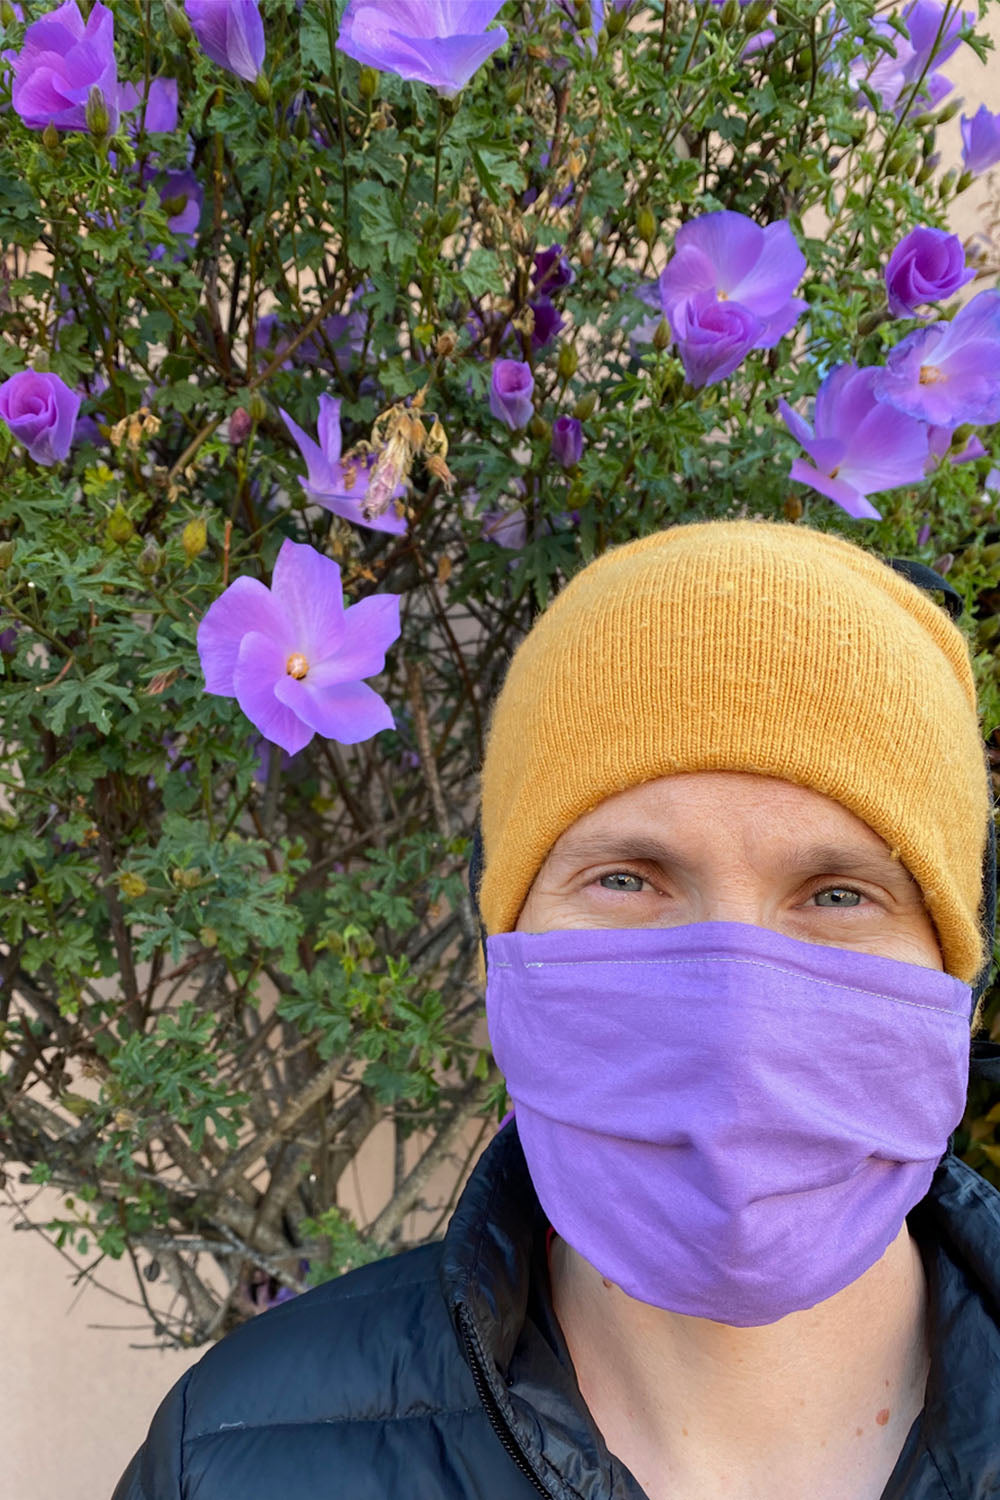 man wears a knitted yellow cap, purple face covering, and black puffy coat. He stands in front of a green bush with purple flowers.